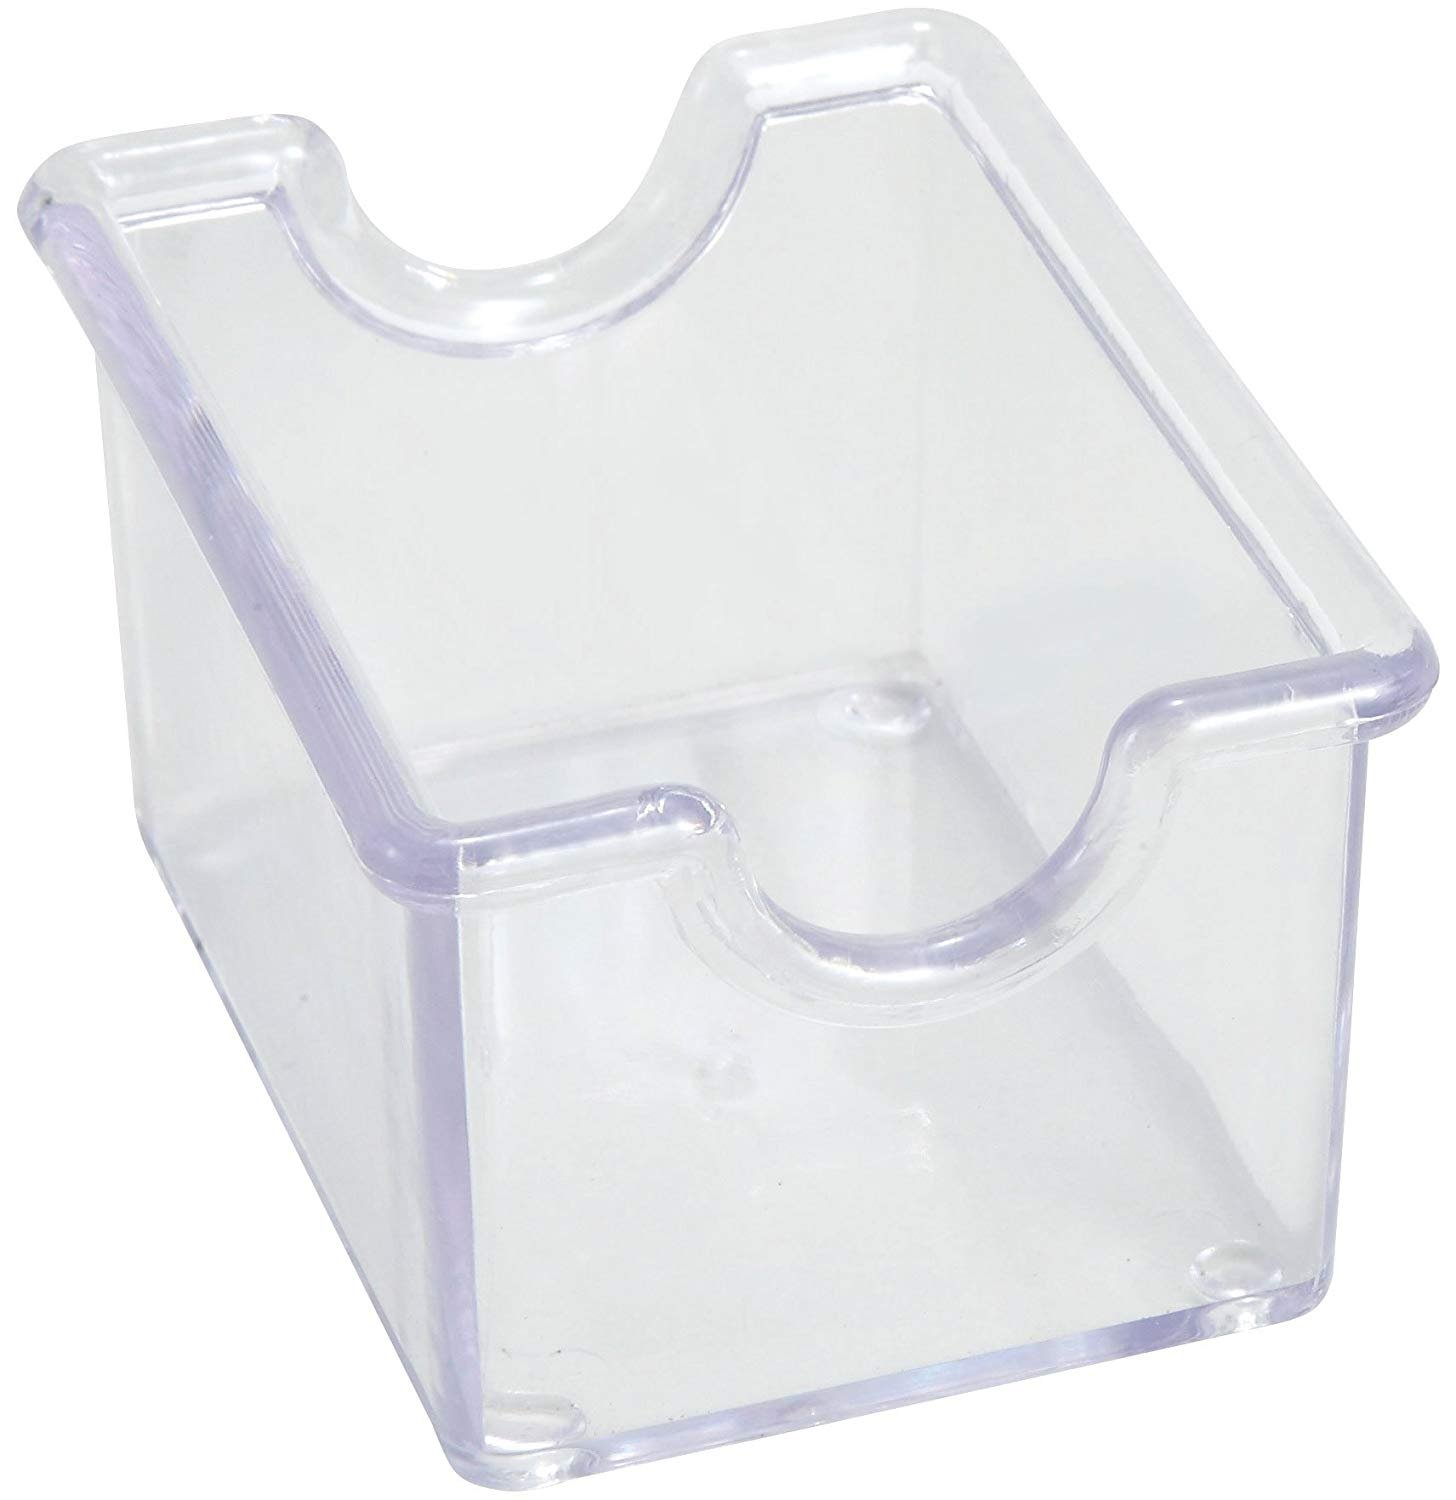 Winco 12-Piece Clear Sugar Packet Holder (Set of 2)